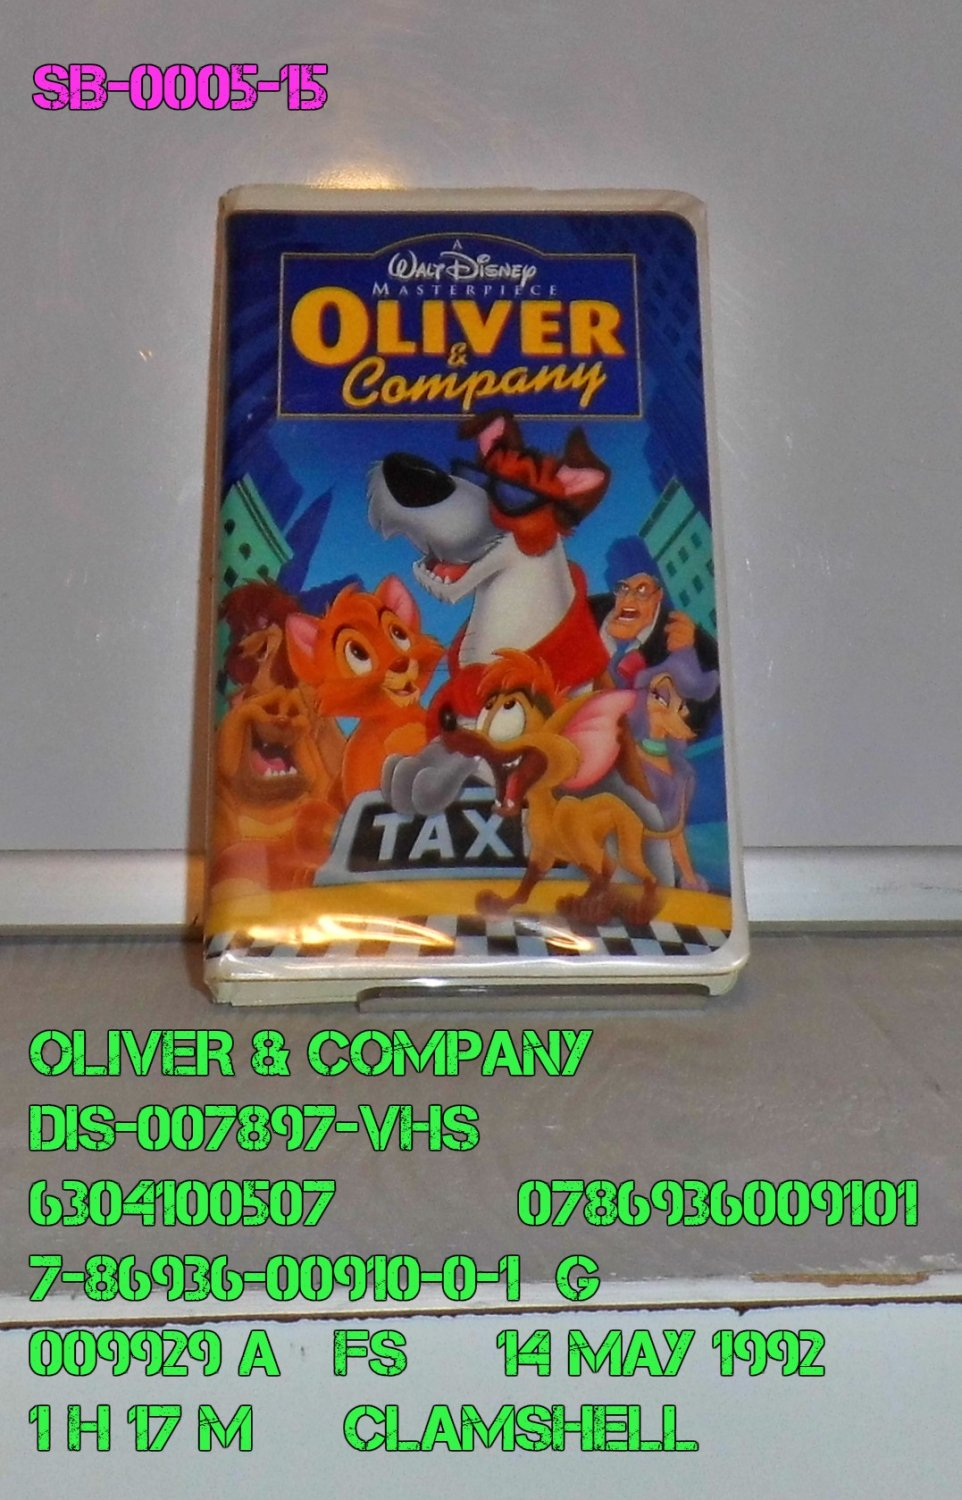 VHS - OLIVER & COMPANY